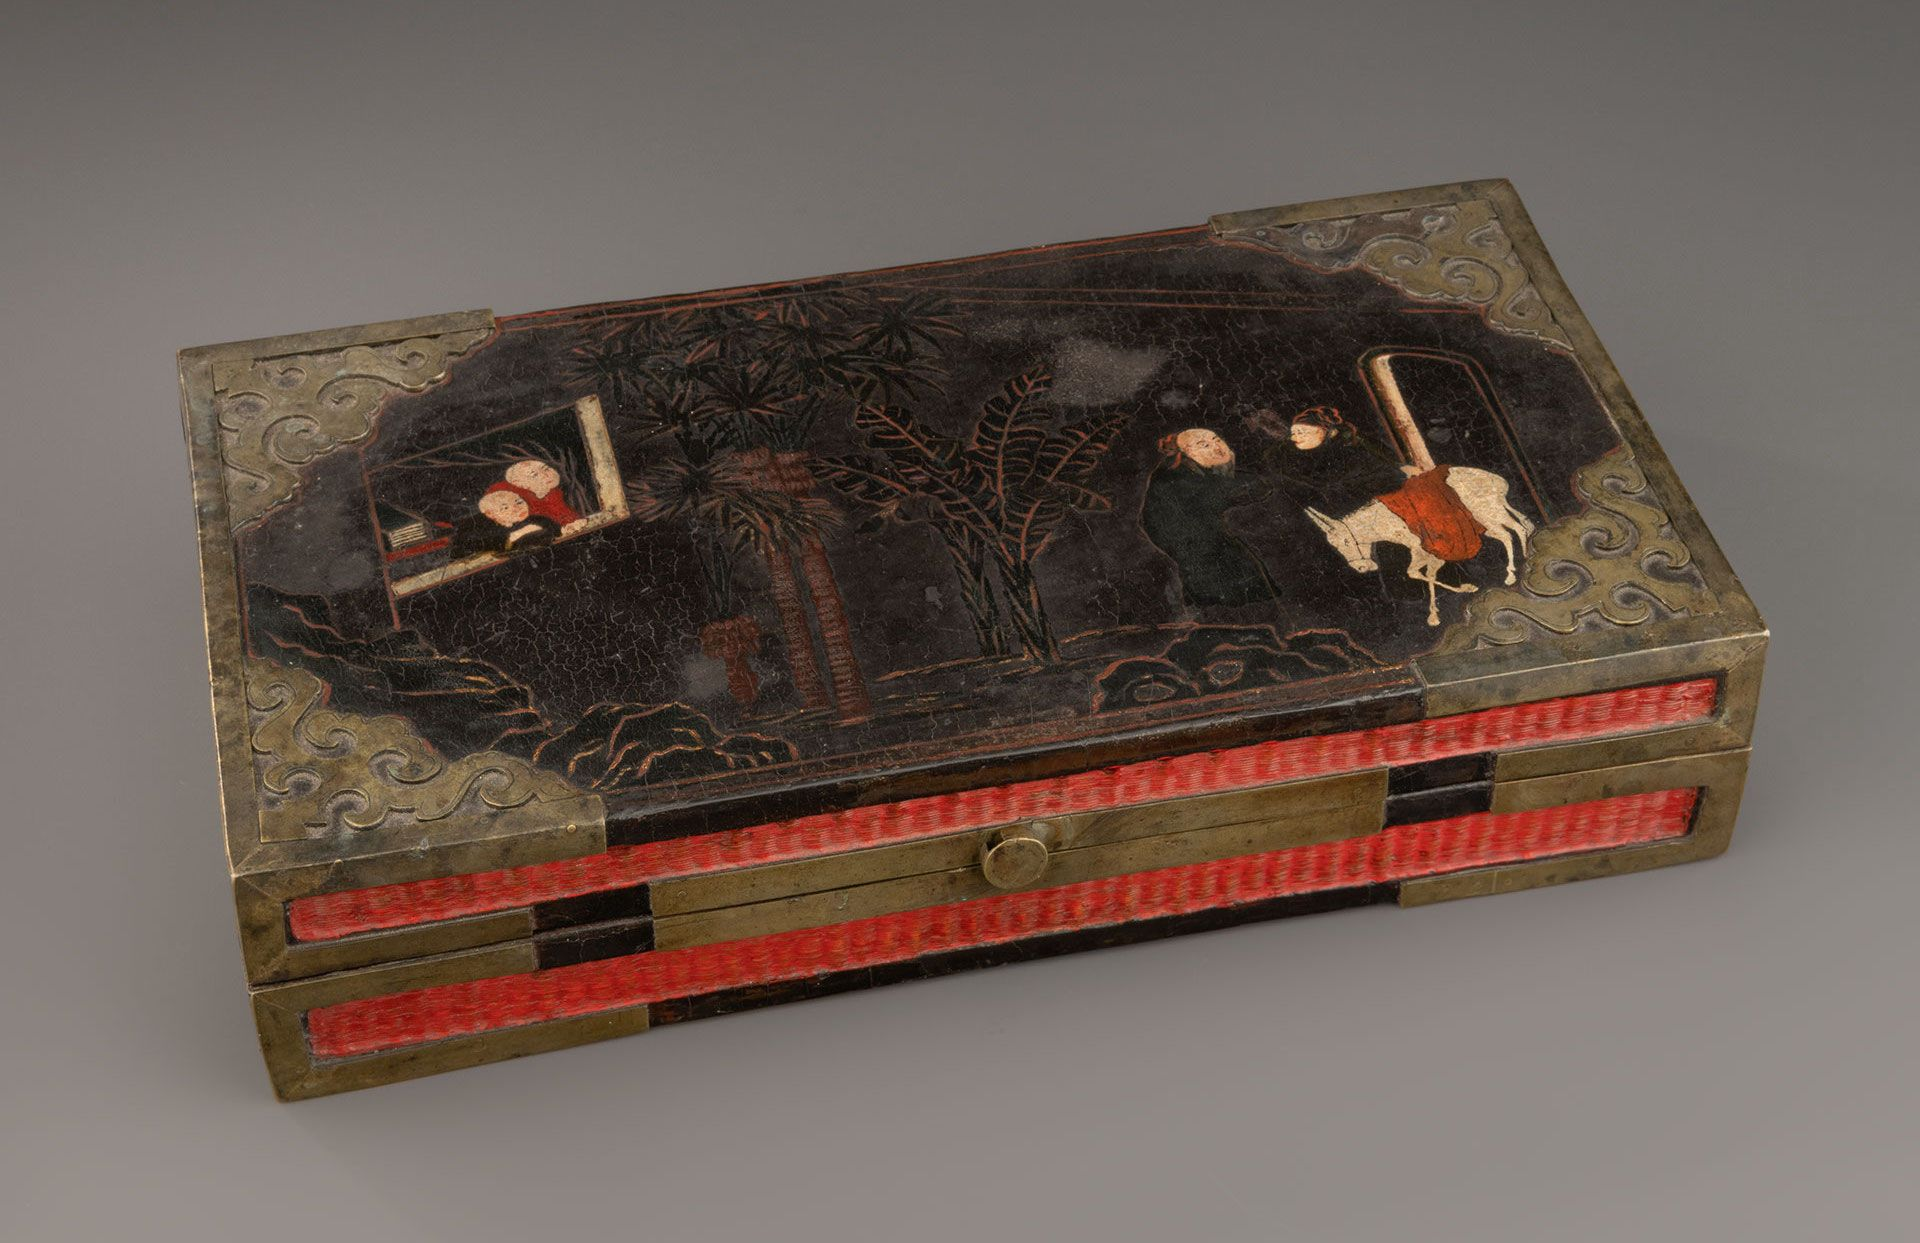 Rectangular box (Changfang He) with figures in a landscape, late 17th – early 18th c., lacquer on wood and vegetable fibres, copper alloy, 7.2 x 34.8 x 20 cm. On loan from the International Friends of the MMFA through the generosity of Kenneth Greenstein